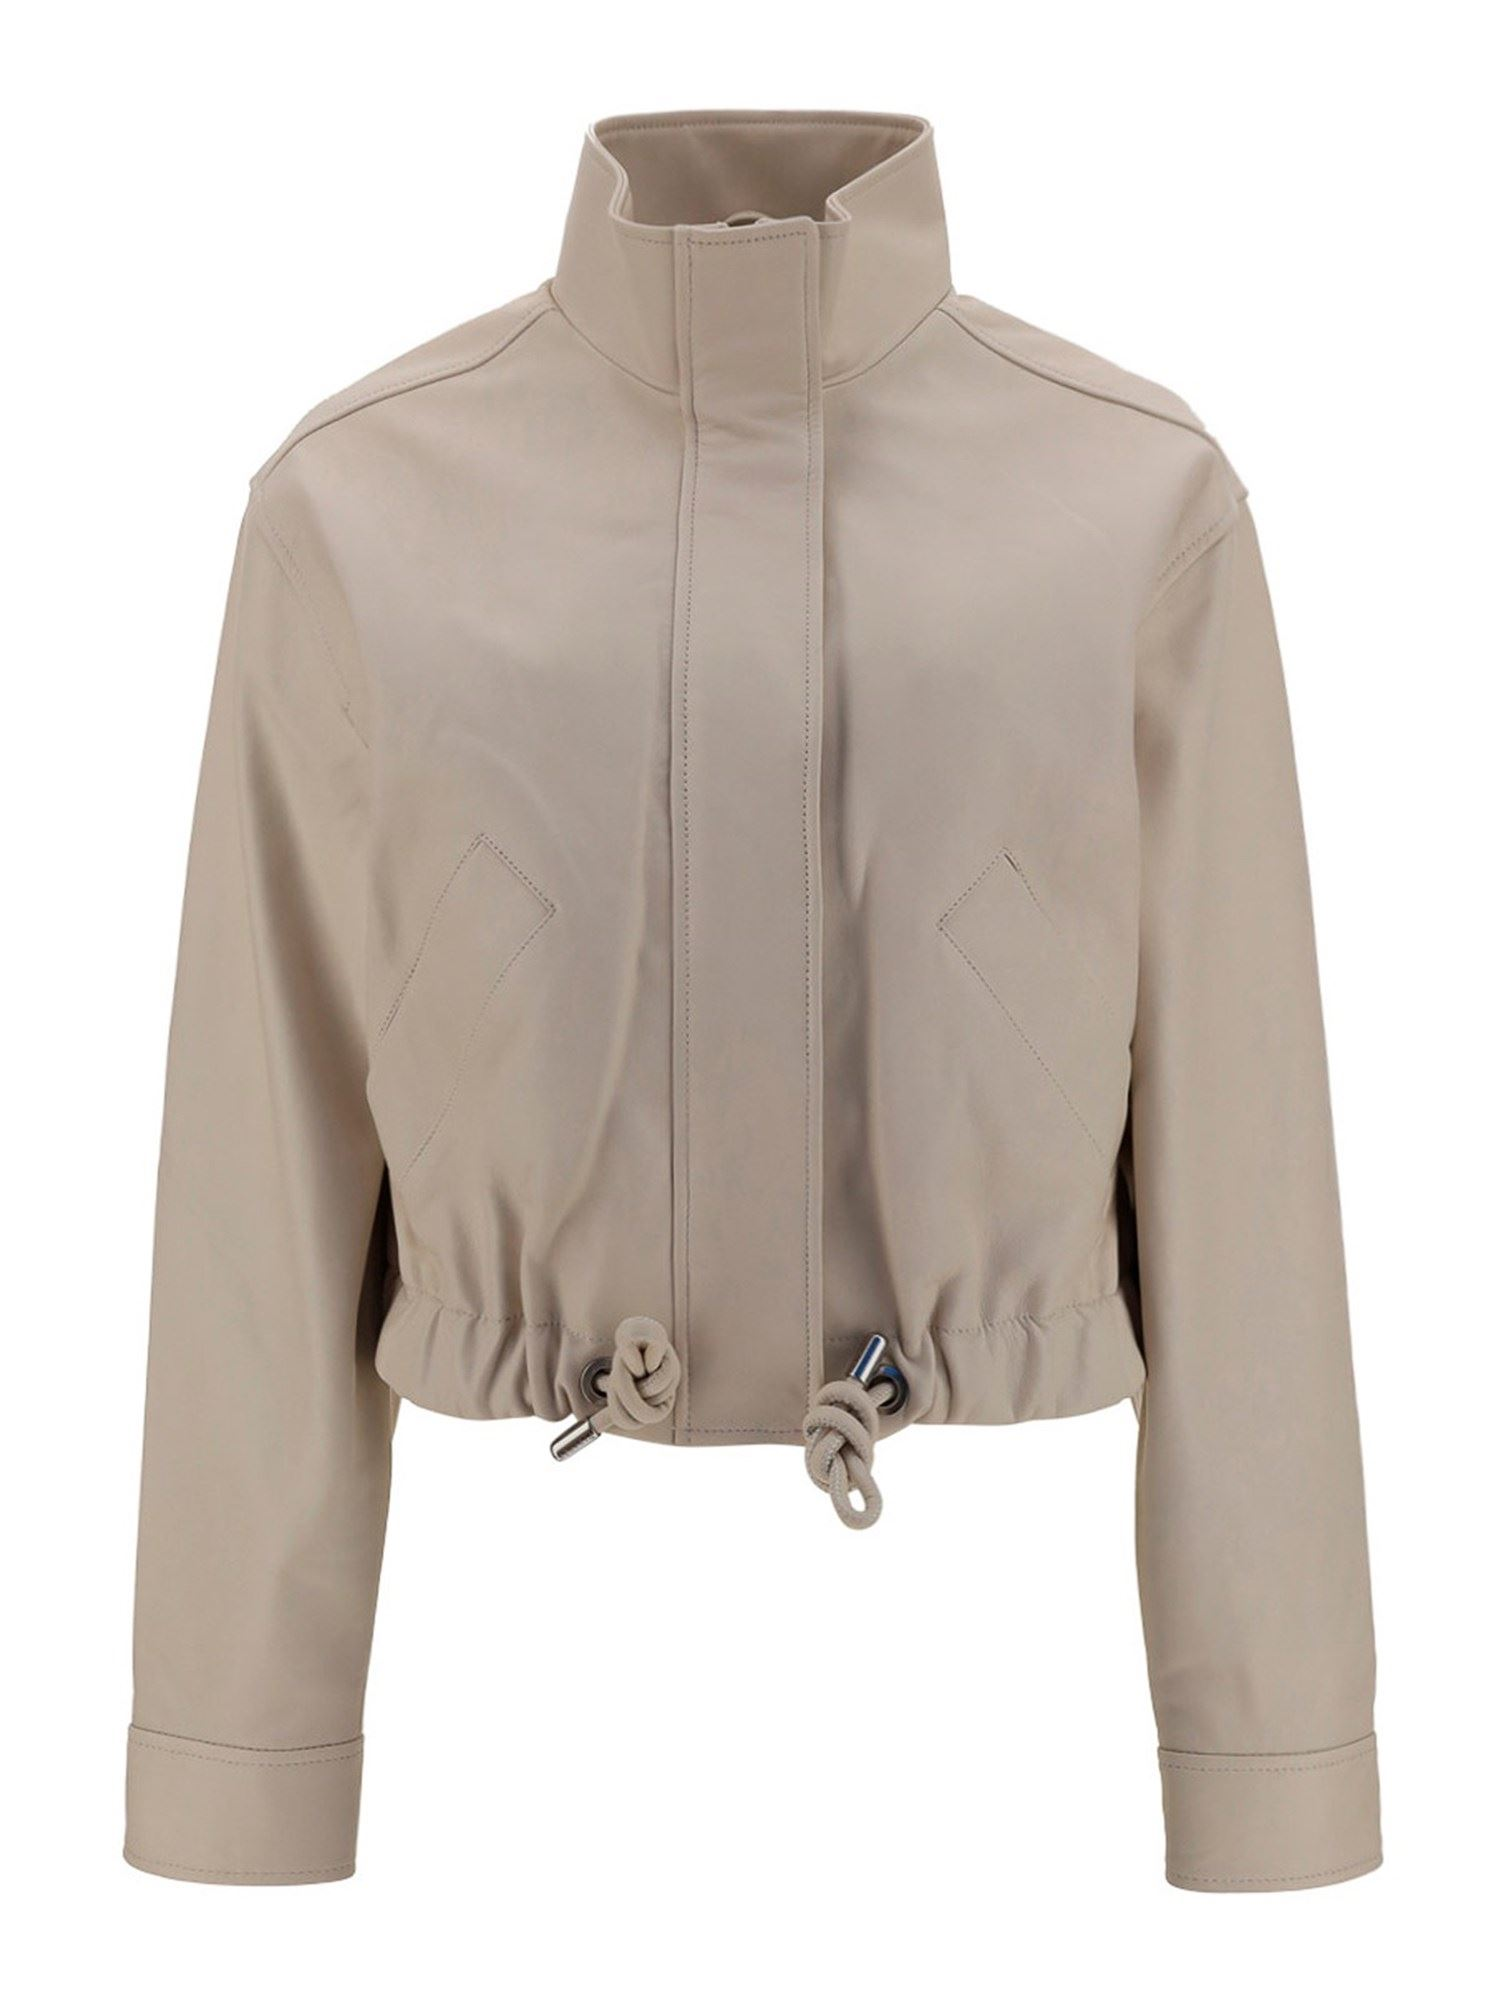 Proenza Schouler SMOOTH LEATHER JACKET